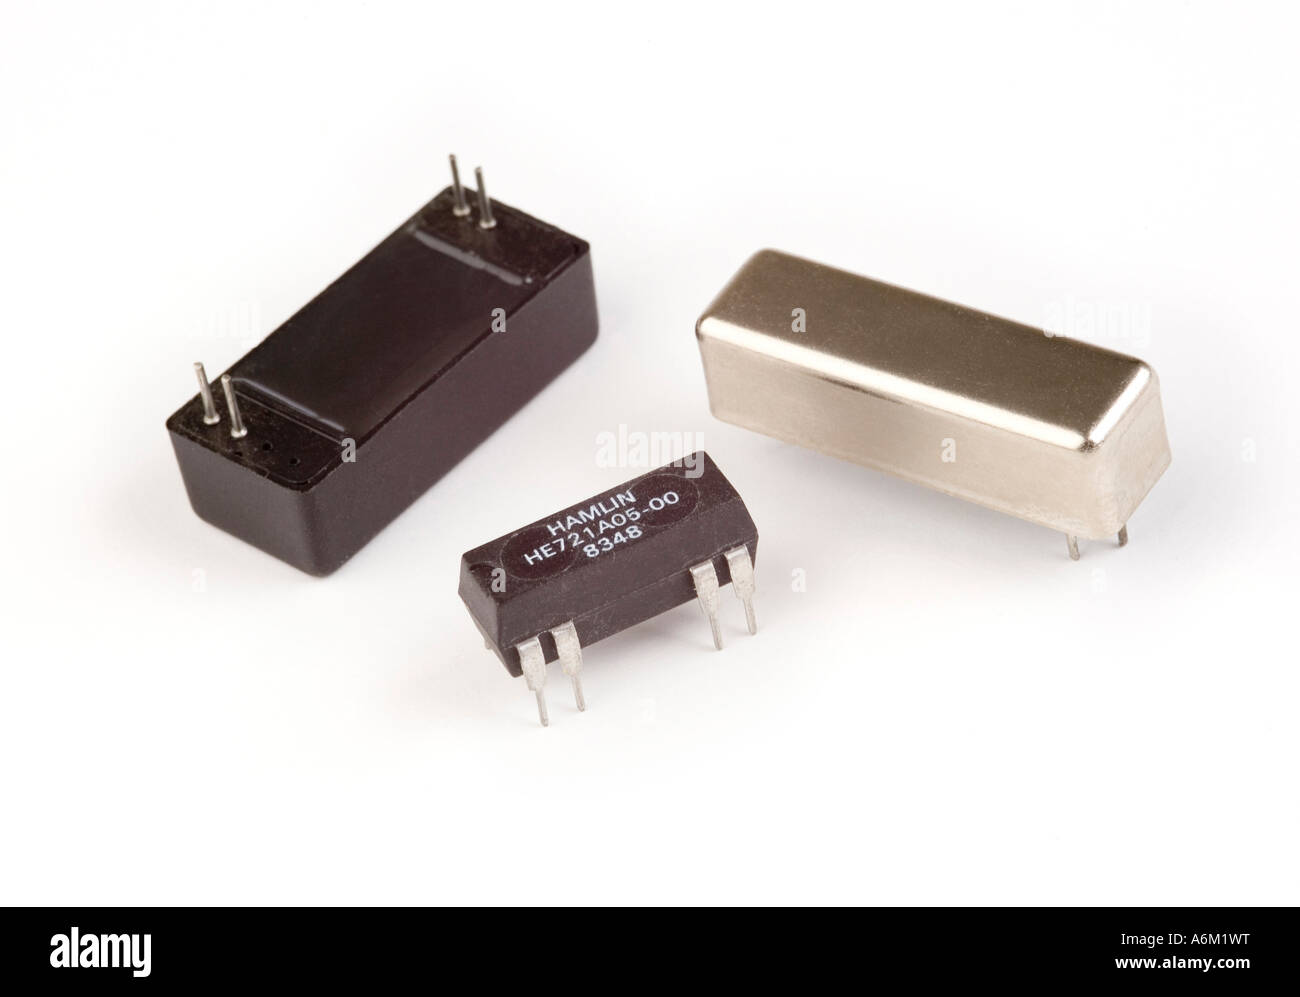 Magnetic Reed Switch Changeover Stock Photos Relay Selection Of Relays Image